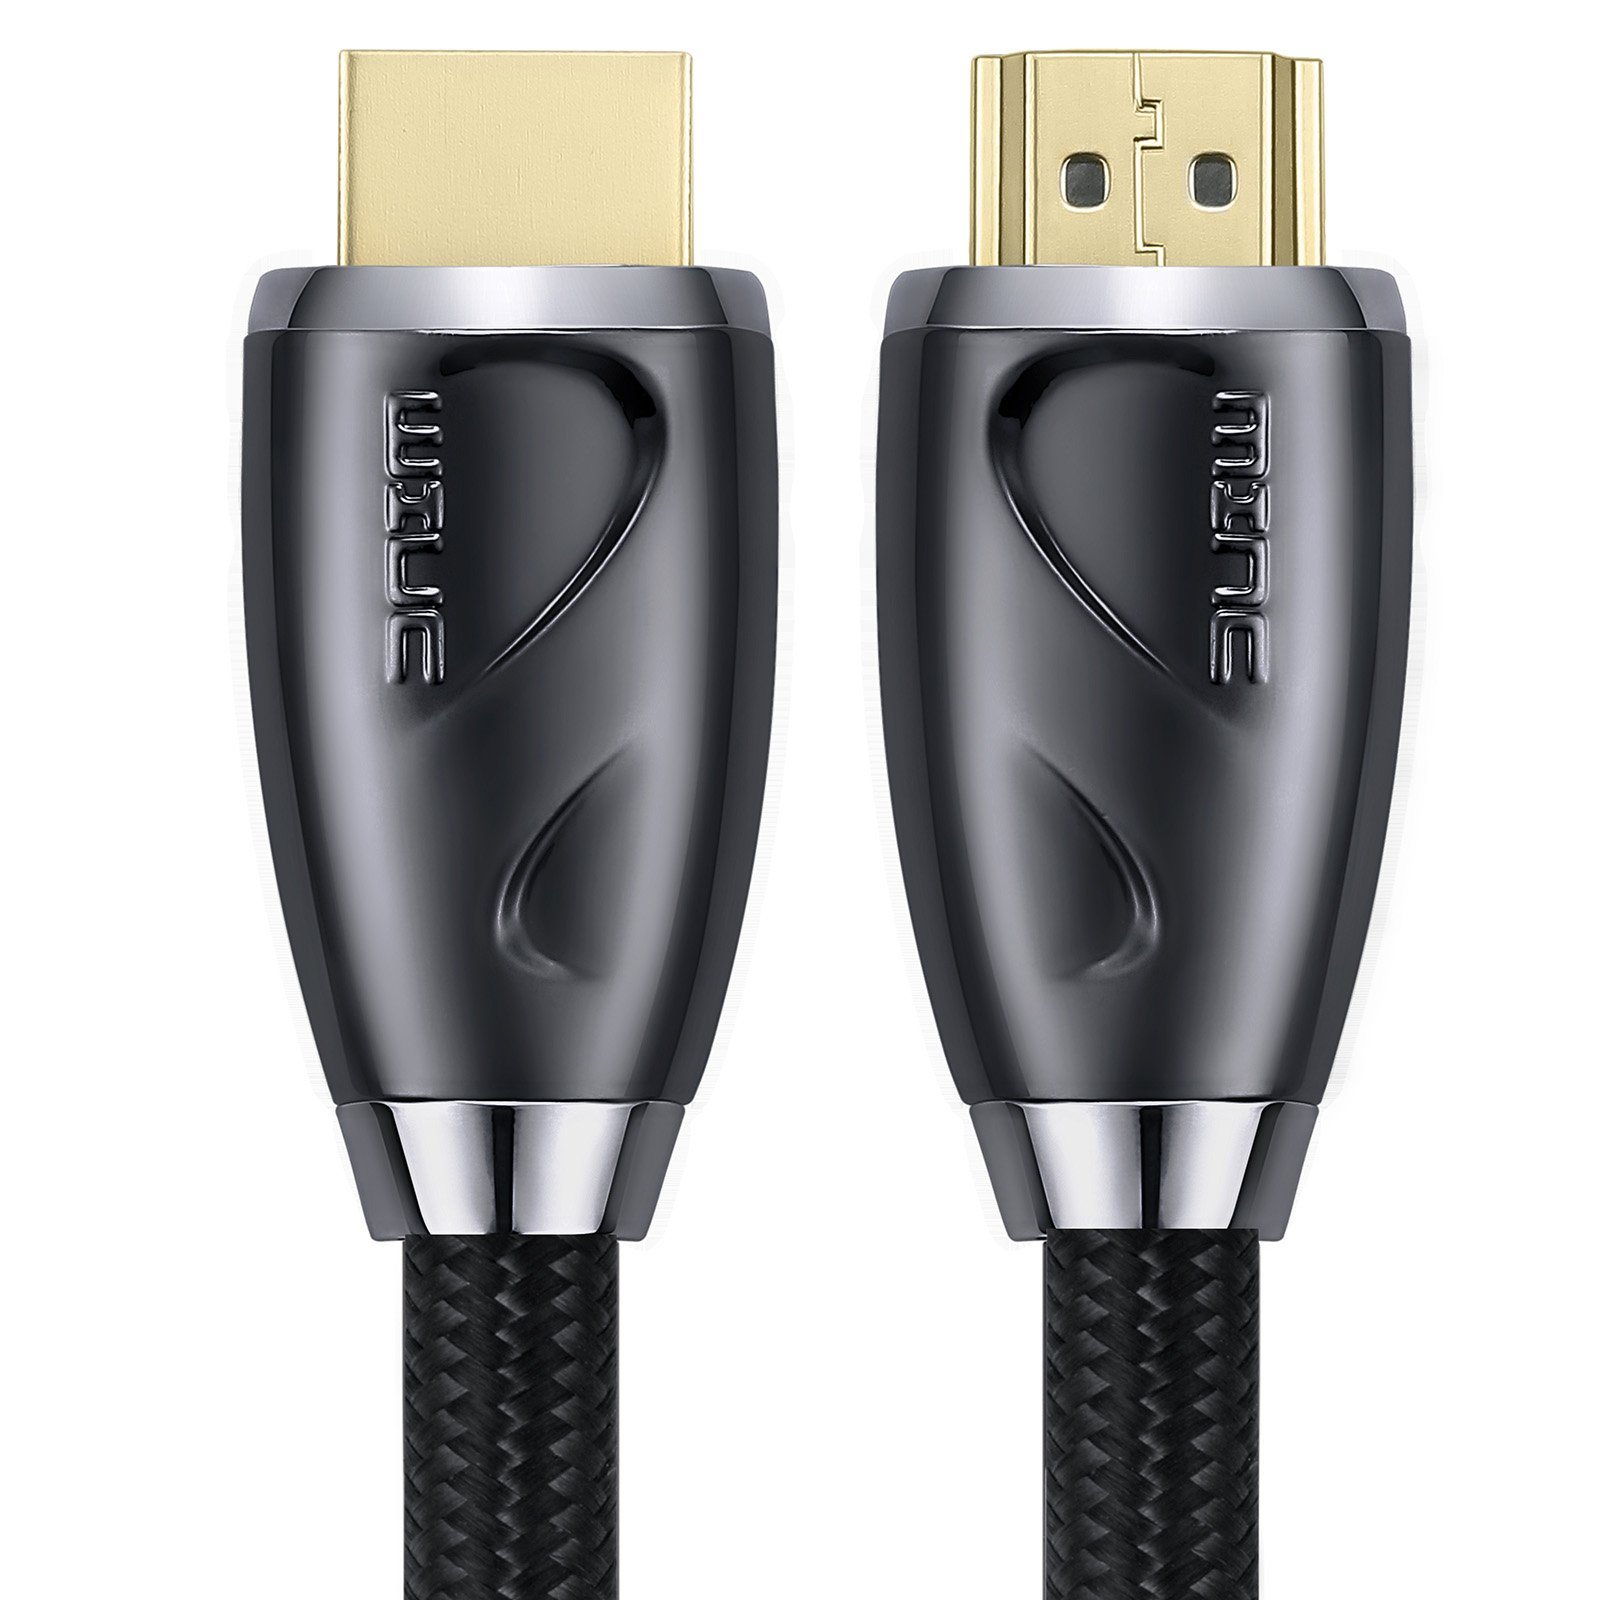 4K HDMI Cable 35 Feet, High Speed HDMI 2.0 Ultra HD Cord, Supports 4K 60Hz, 1440p 120Hz, 1080p 240Hz, HDCP 2.2 and ARC by Minc